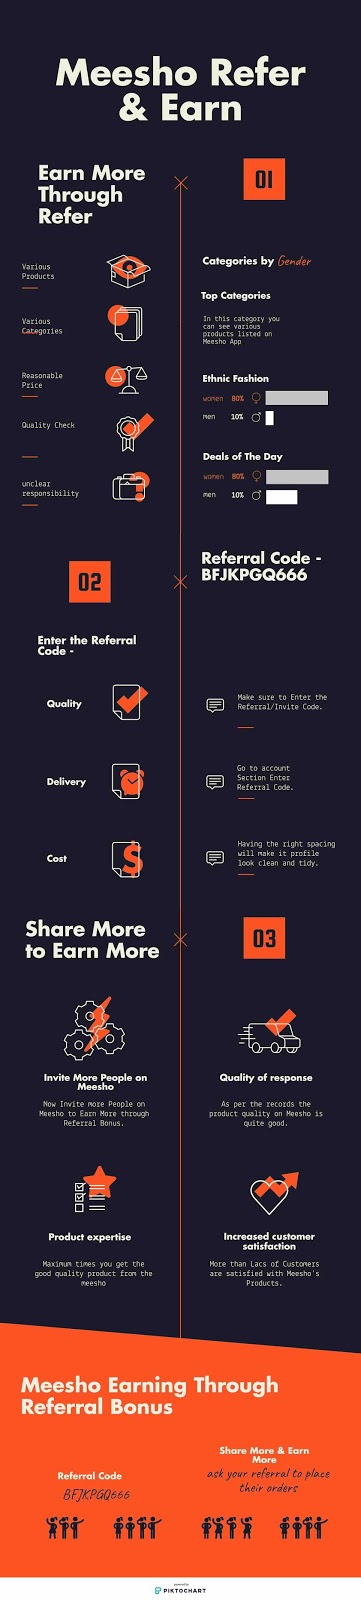 Meesho App Loot - Refer & Earn + Referral Code